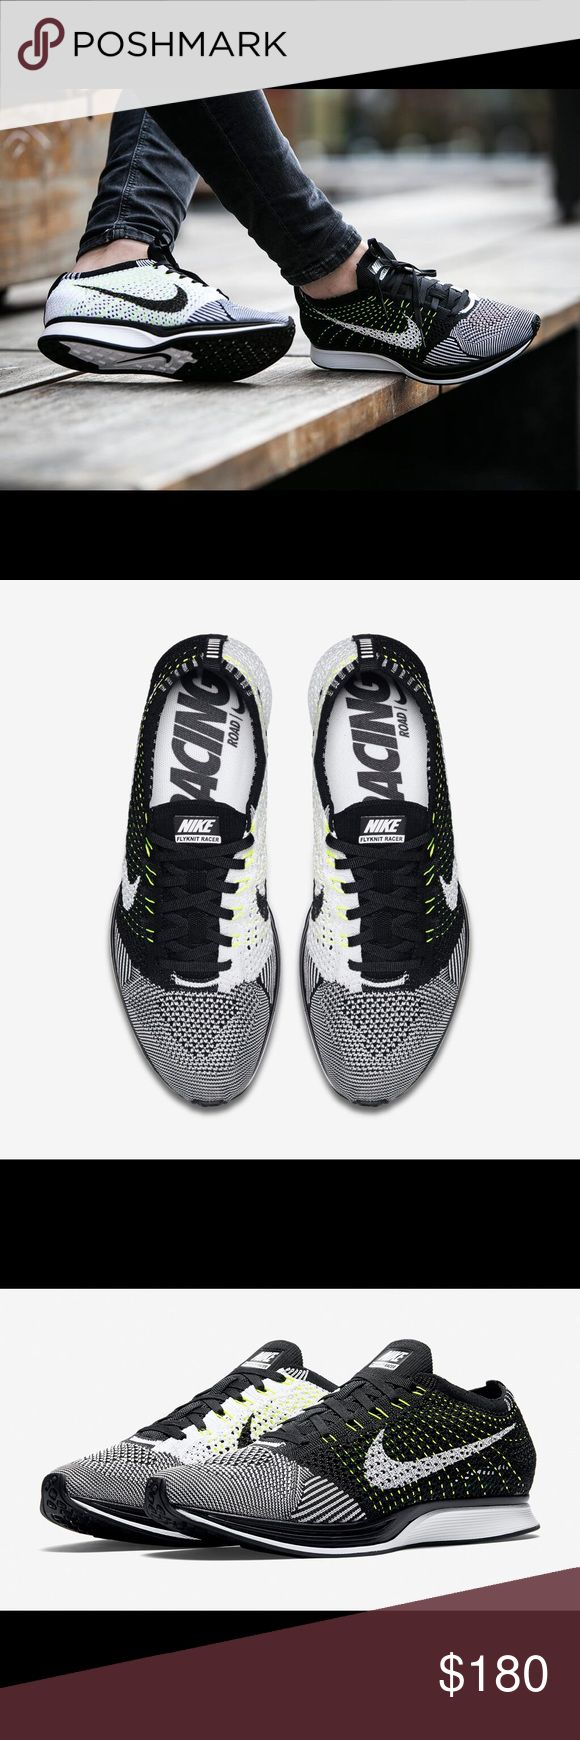 Nike Flyknit Racers Black/white/volt. Size men's 5, which I think is a women's 6.5 or 7. Nike Shoes Sneakers